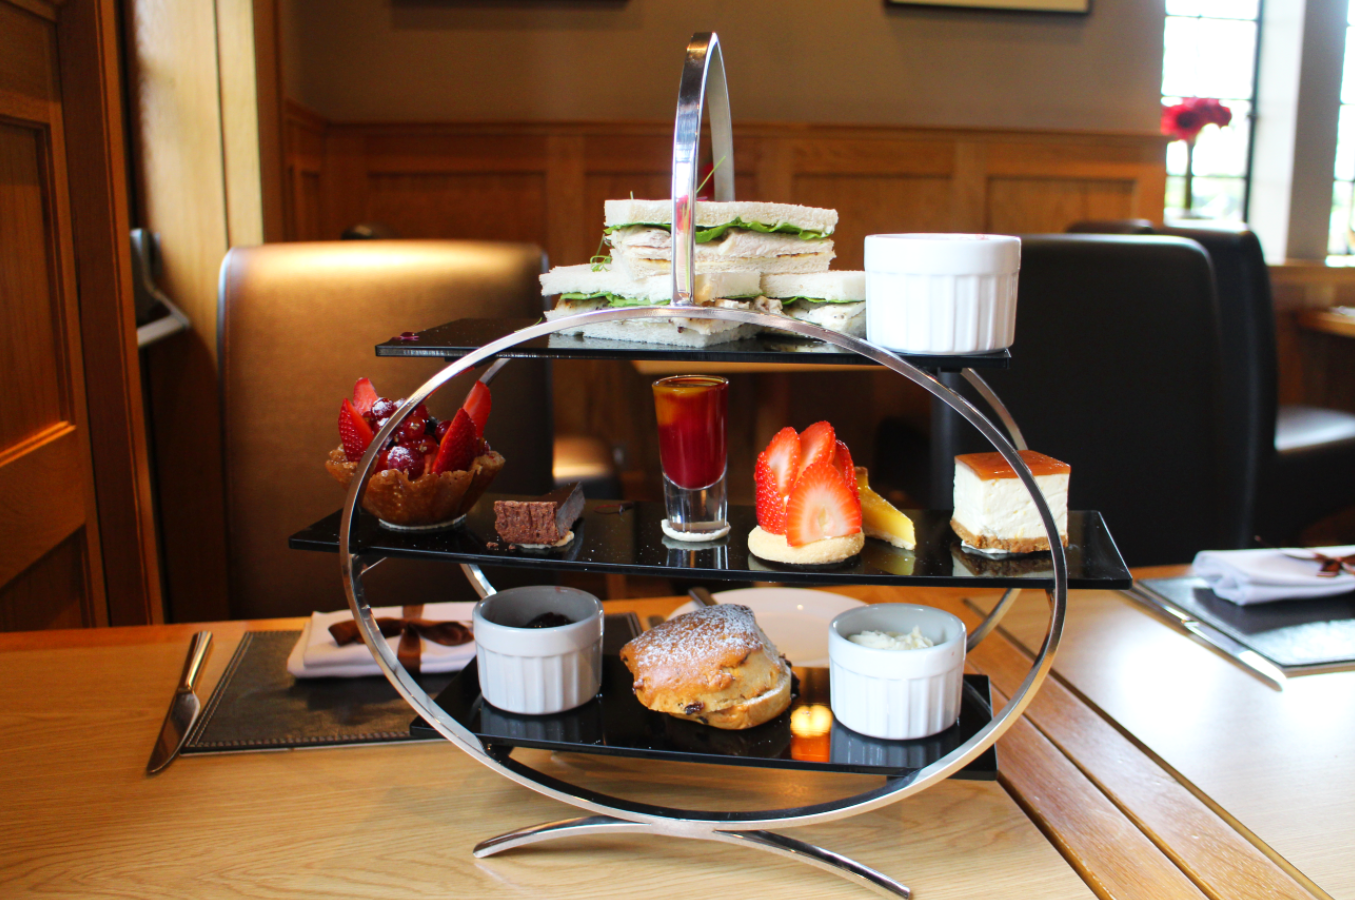 Treat someone to delicious Afternoon Tea this Christmas